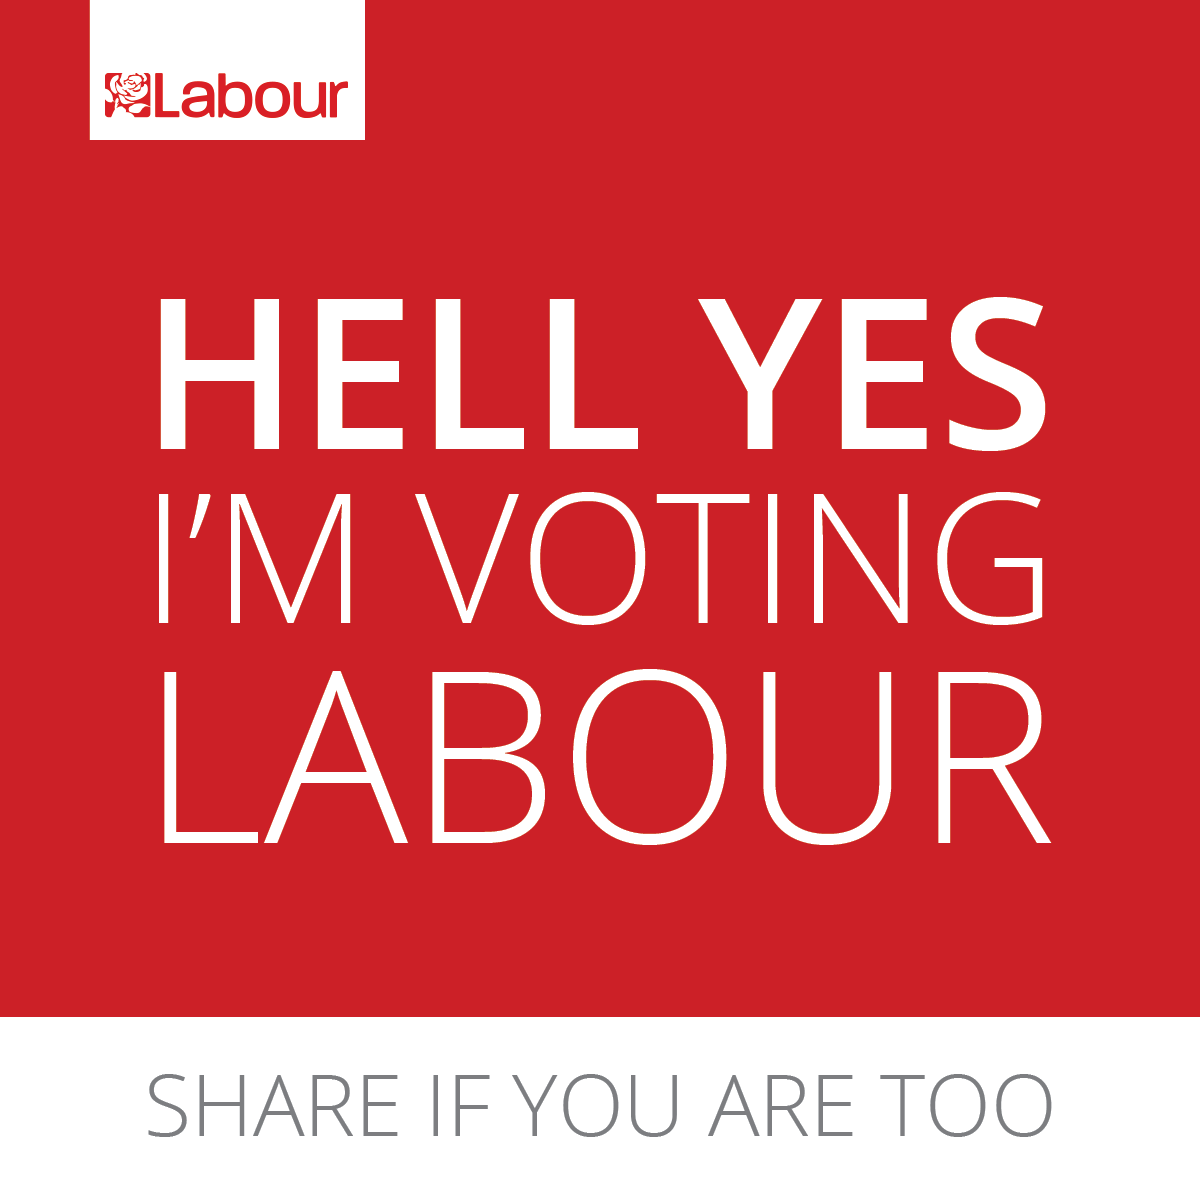 #HellYes #VoteLabour http://t.co/H0BmBkbehP